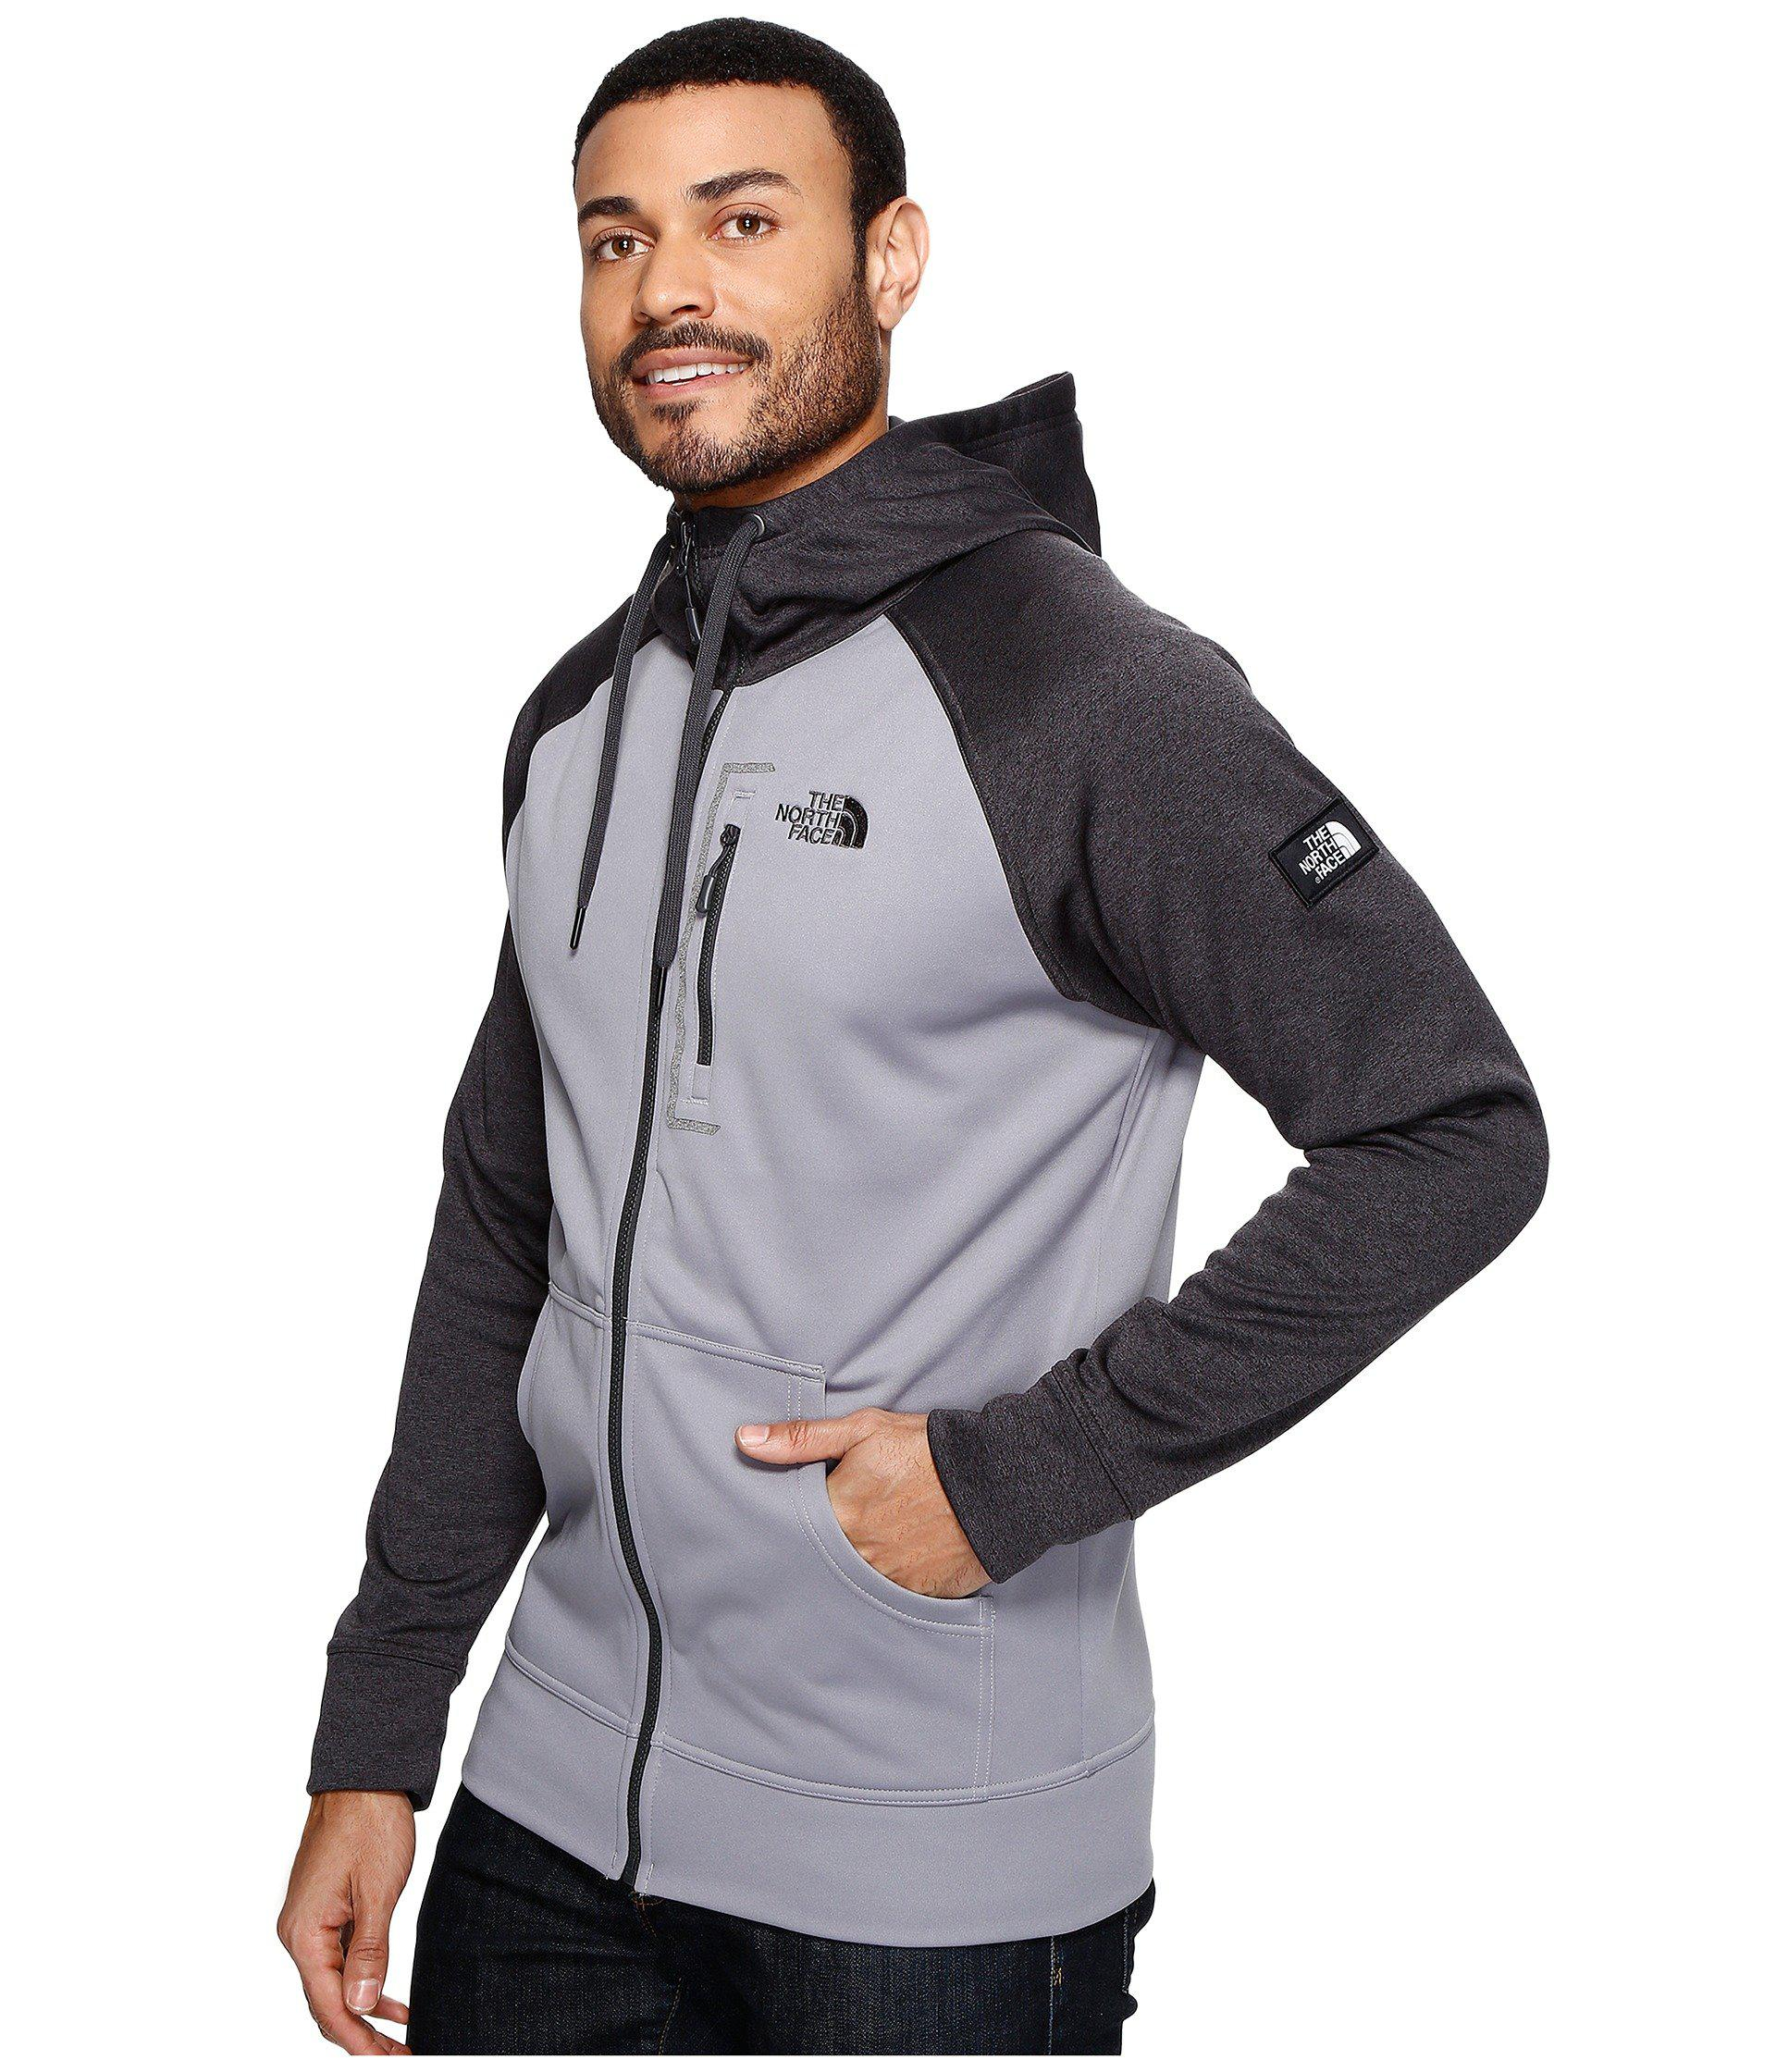 b905d671e283 Lyst - The North Face Mack Mays Full Zip Hoodie in Gray for Men